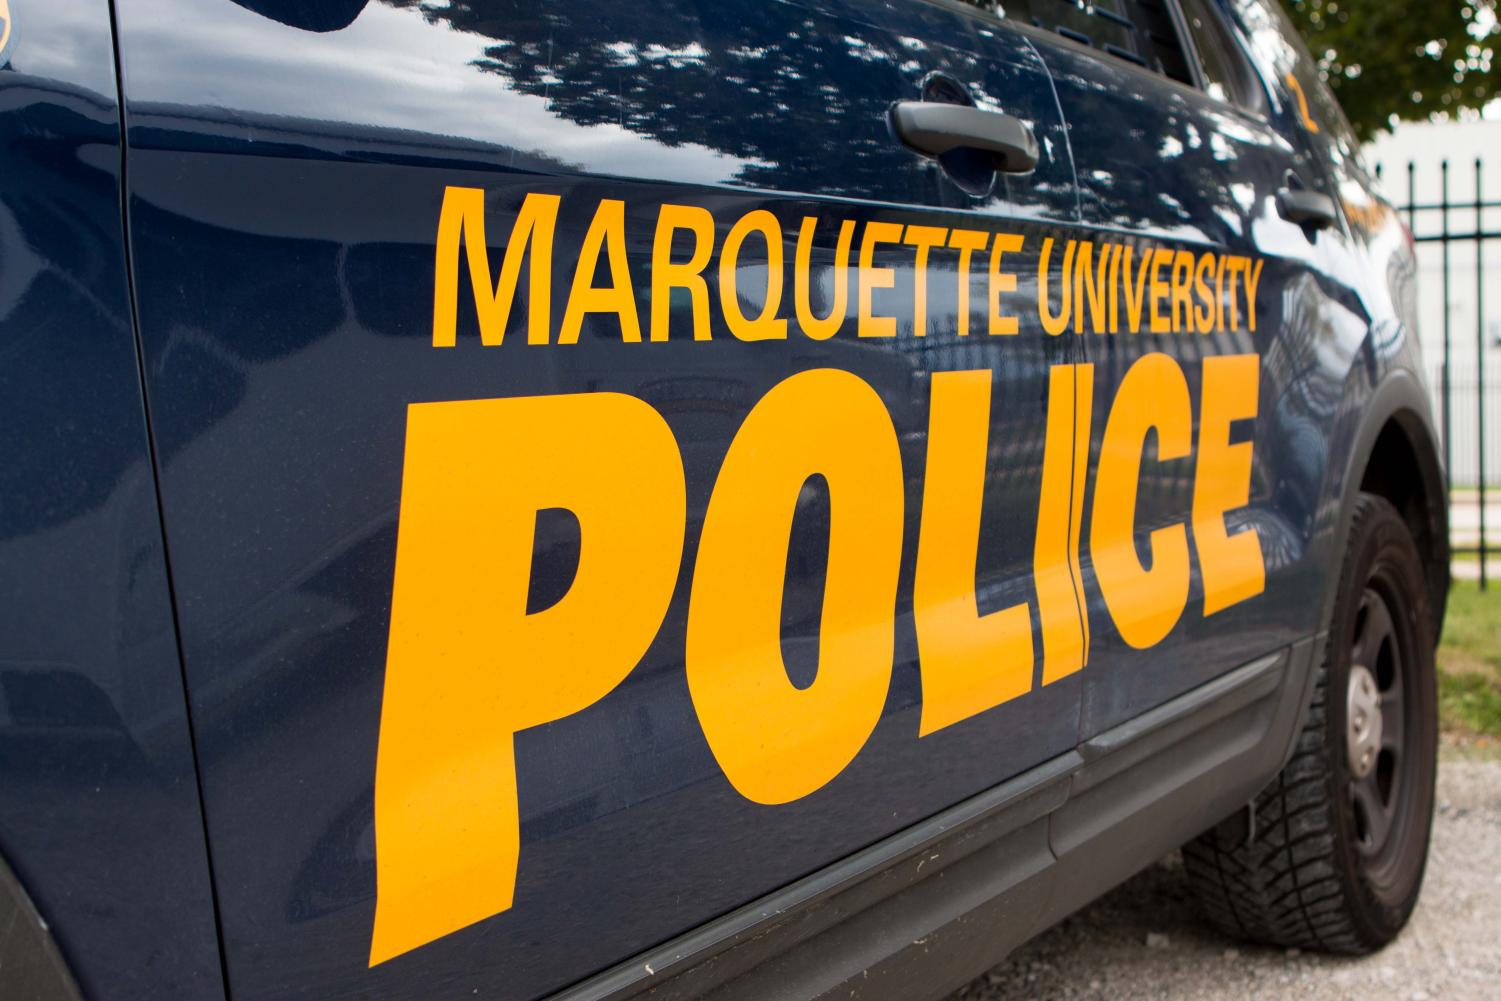 MUPD sent a safety alert to students about the incident. Marquette Wire stock photo.